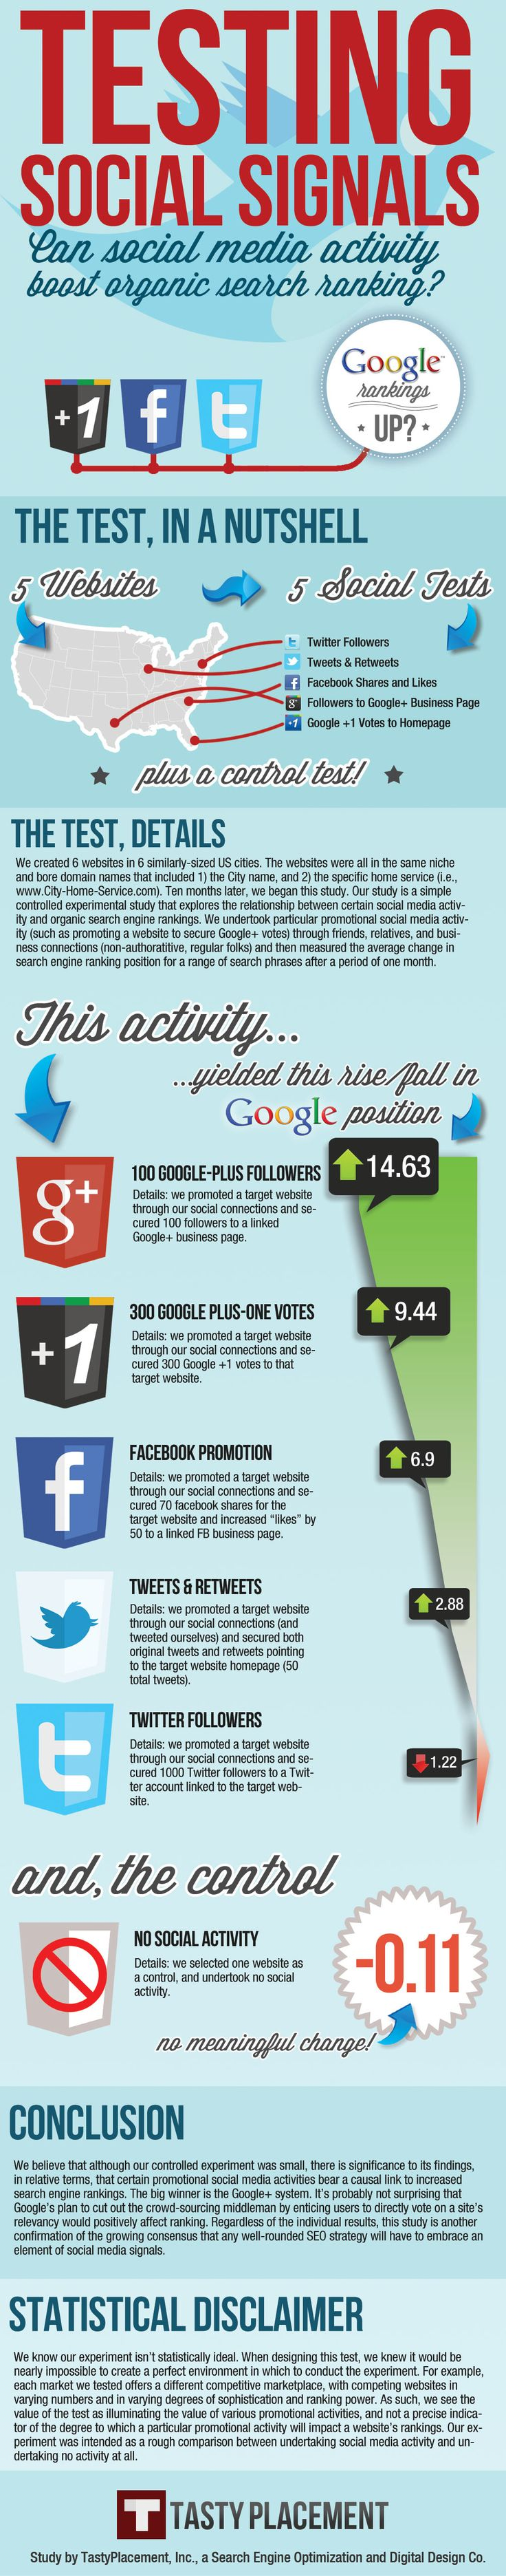 Social media has an impact on organic search ranking. See which platforms perform best with this infographic.